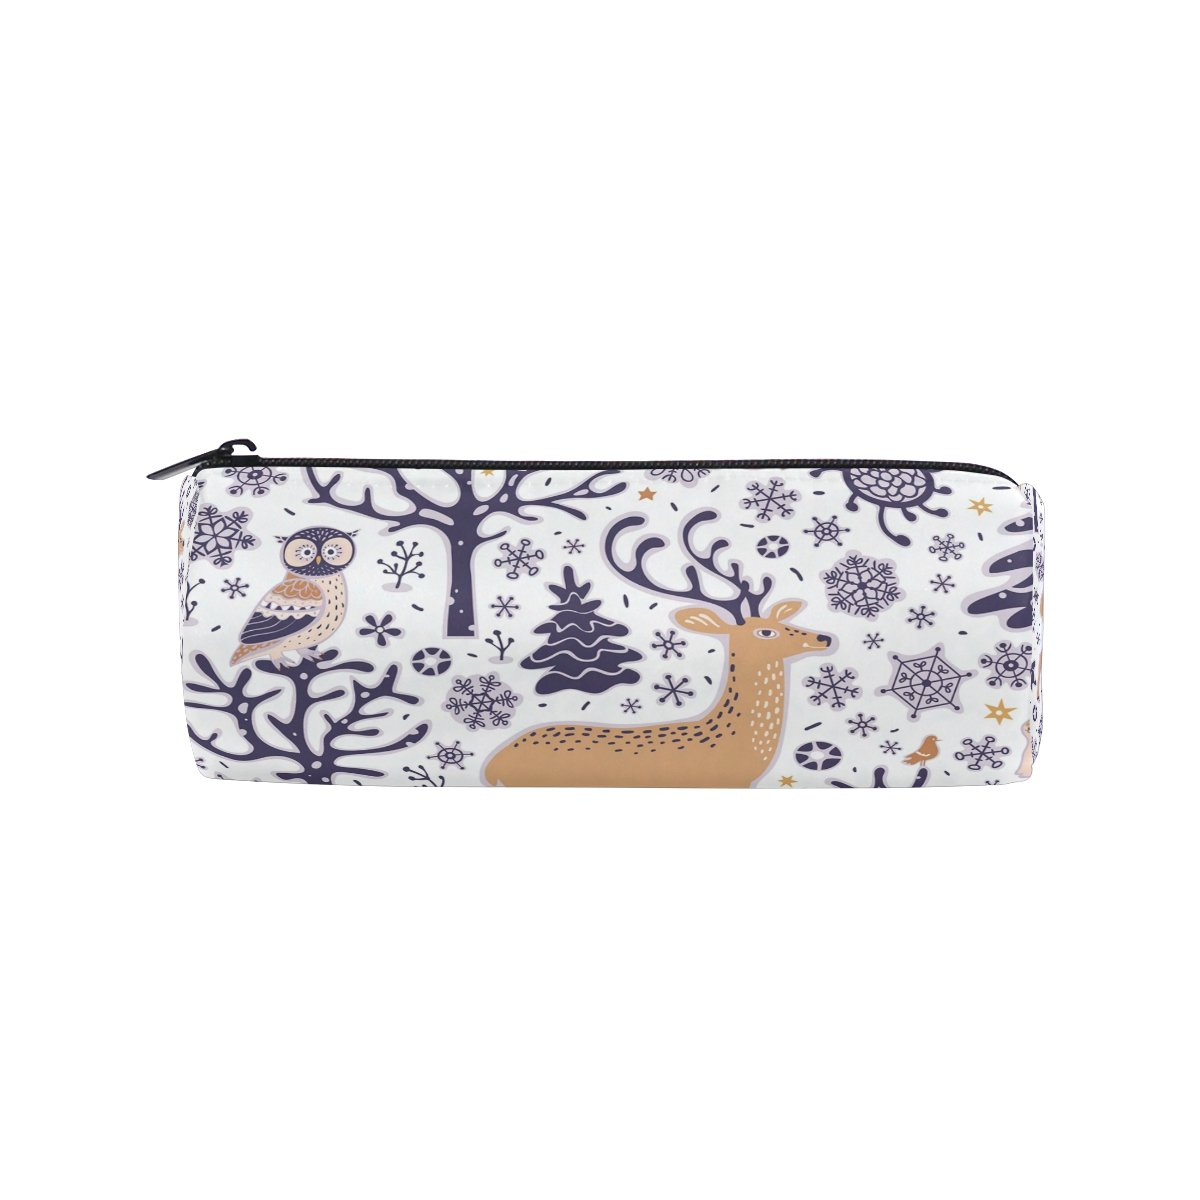 ALAZA Forest Animals Deer Owl Pencil Pen Case Pouch Bag with Zipper for Girls Kids School Student Stationery Office Supplies